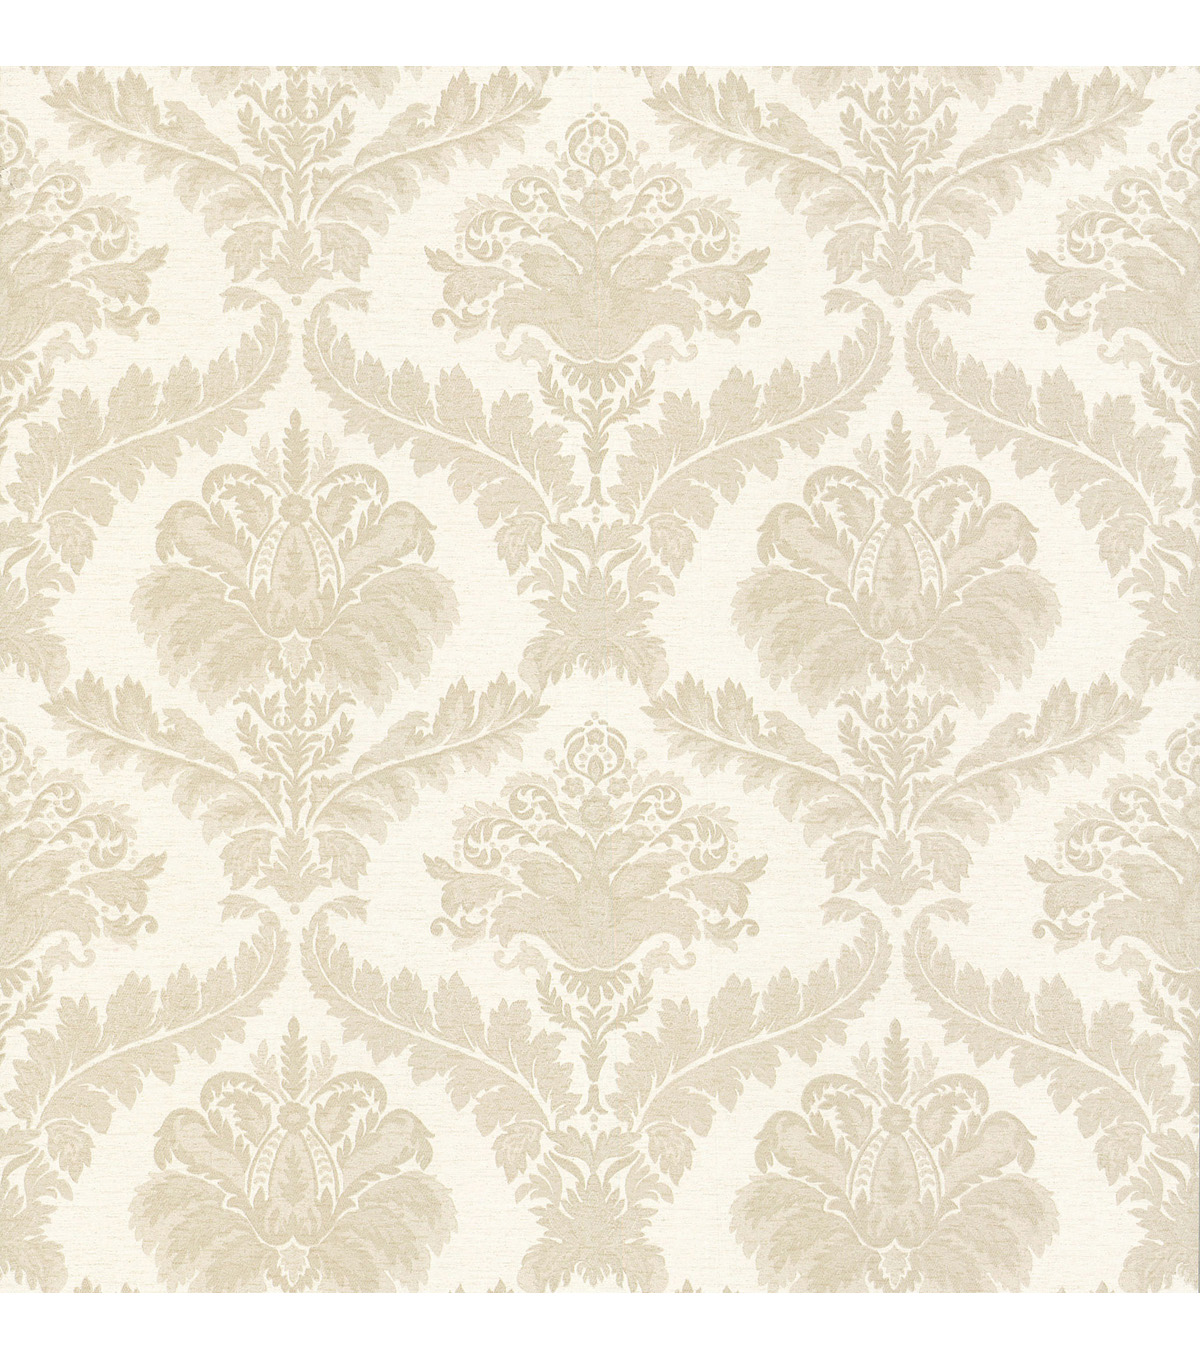 Arabella Cream Damask Wallpaper